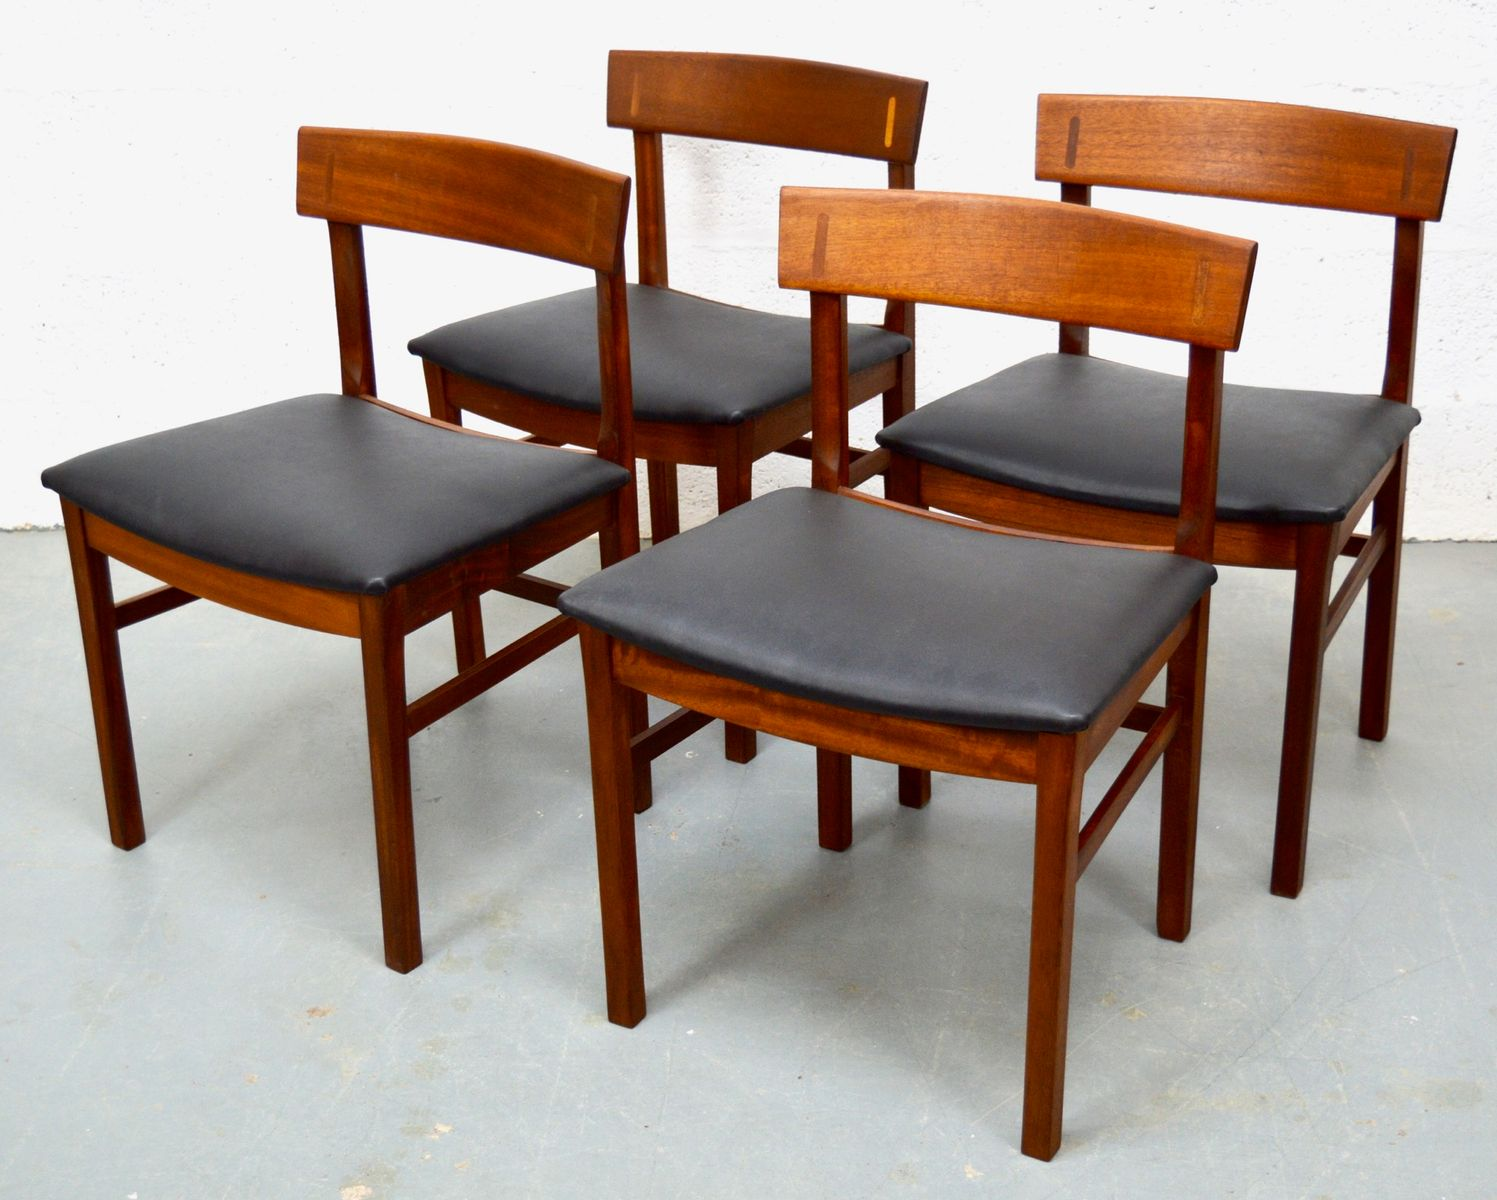 mid century teak tisch und st hle von gordon russell bei pamono kaufen. Black Bedroom Furniture Sets. Home Design Ideas